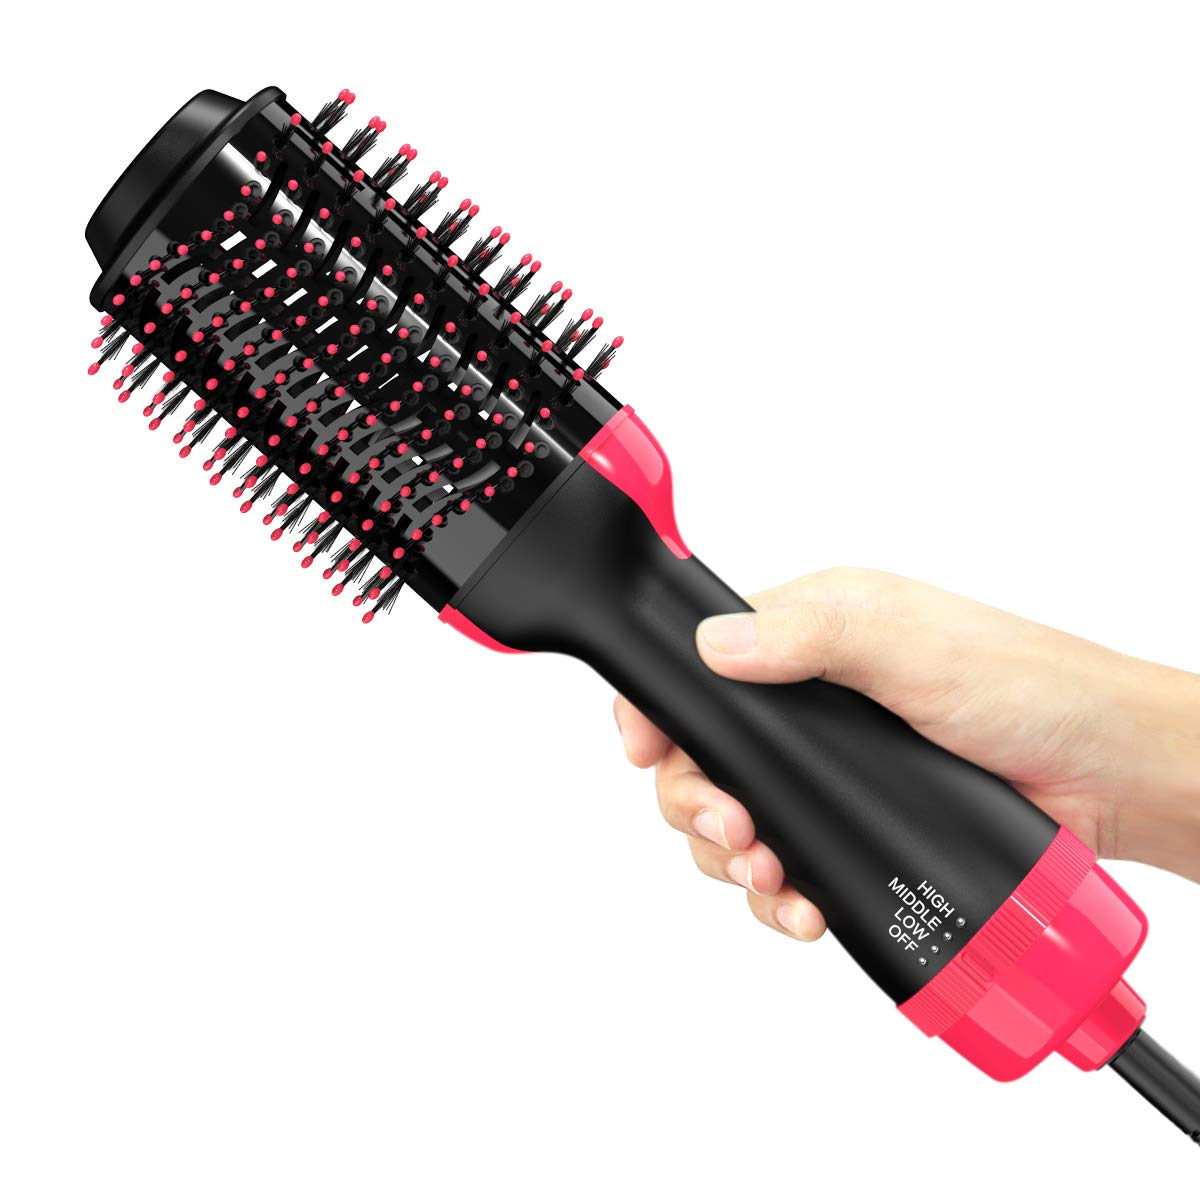 Professional Salon Hot Air Brush, One Step Hair Dryer and Volumizer Styler and Dryer 2-in-1 Negative Ion Straightening Brush Hair Dryer with Comb LANODT